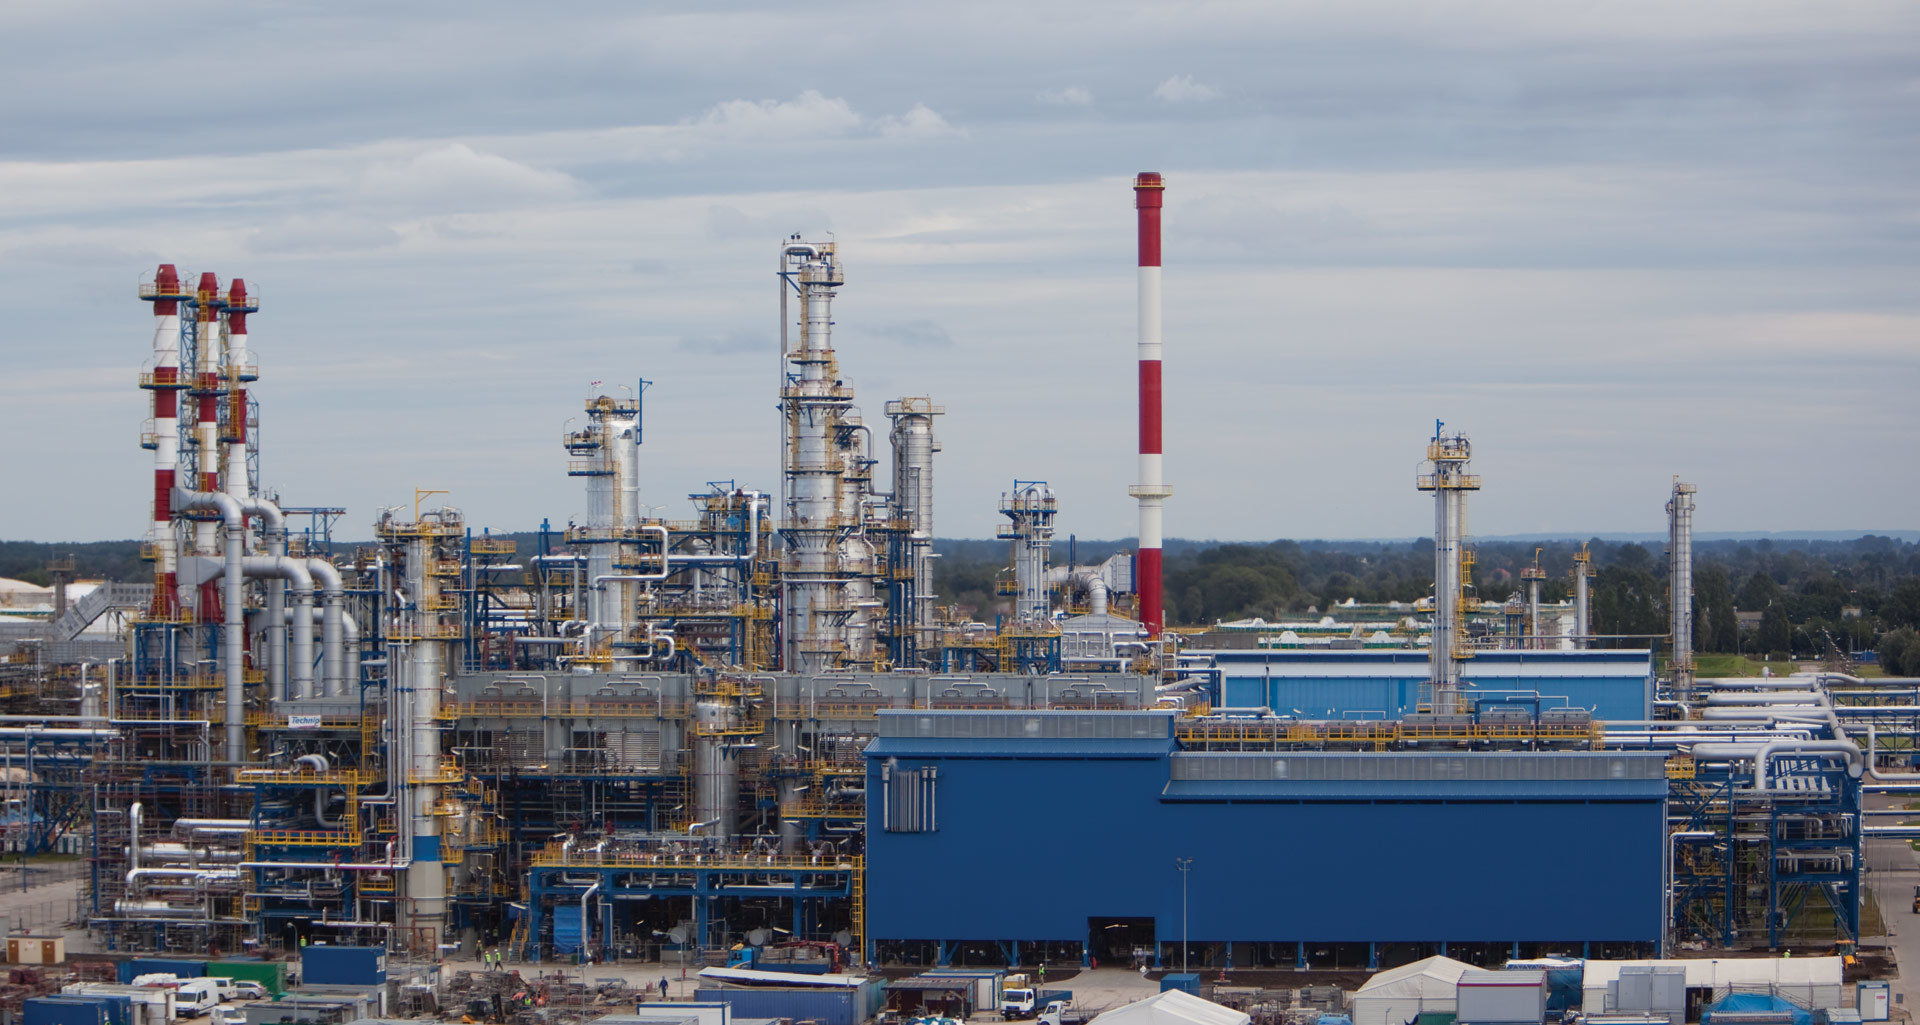 ... BP dissolve refining joint venture - News for the Oil and Gas Sector